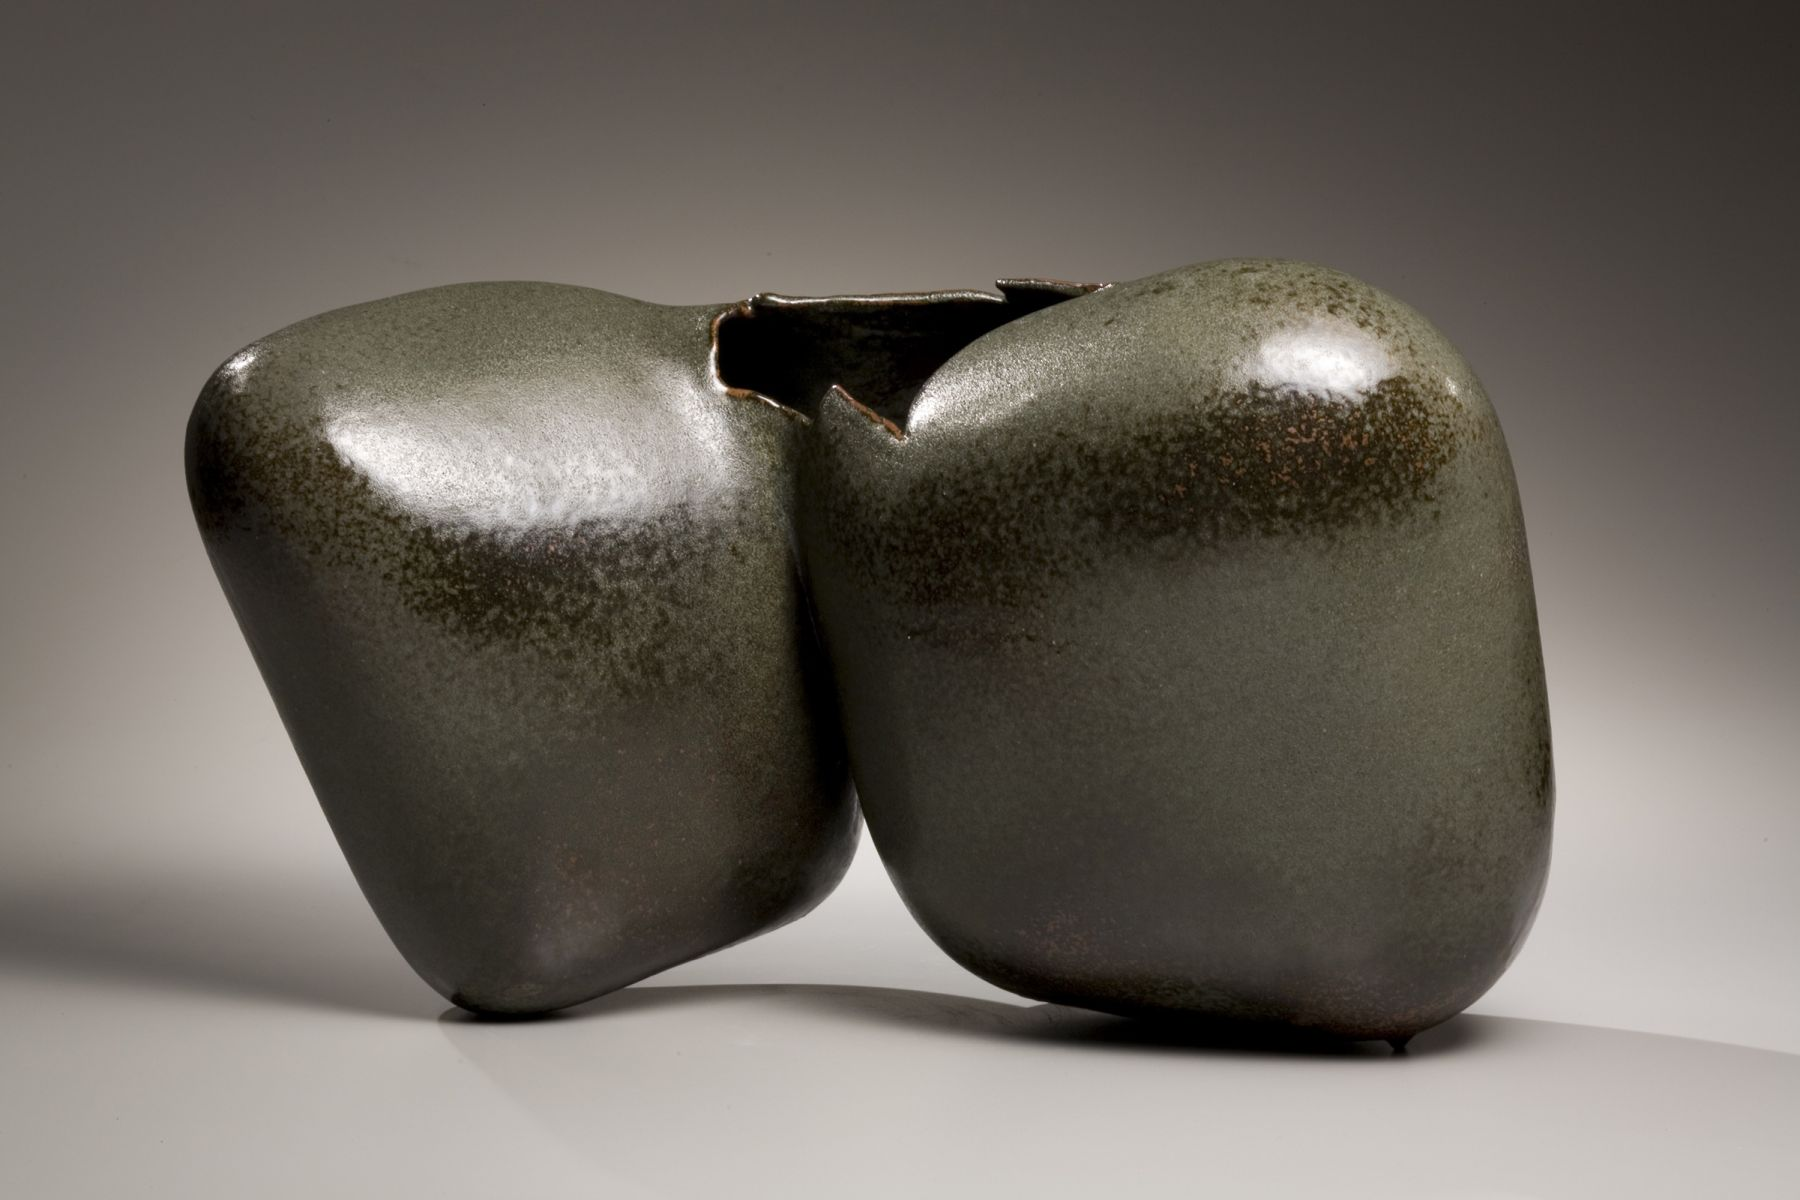 Biomorphic sculpture of double-sided bulbous forms, 2001